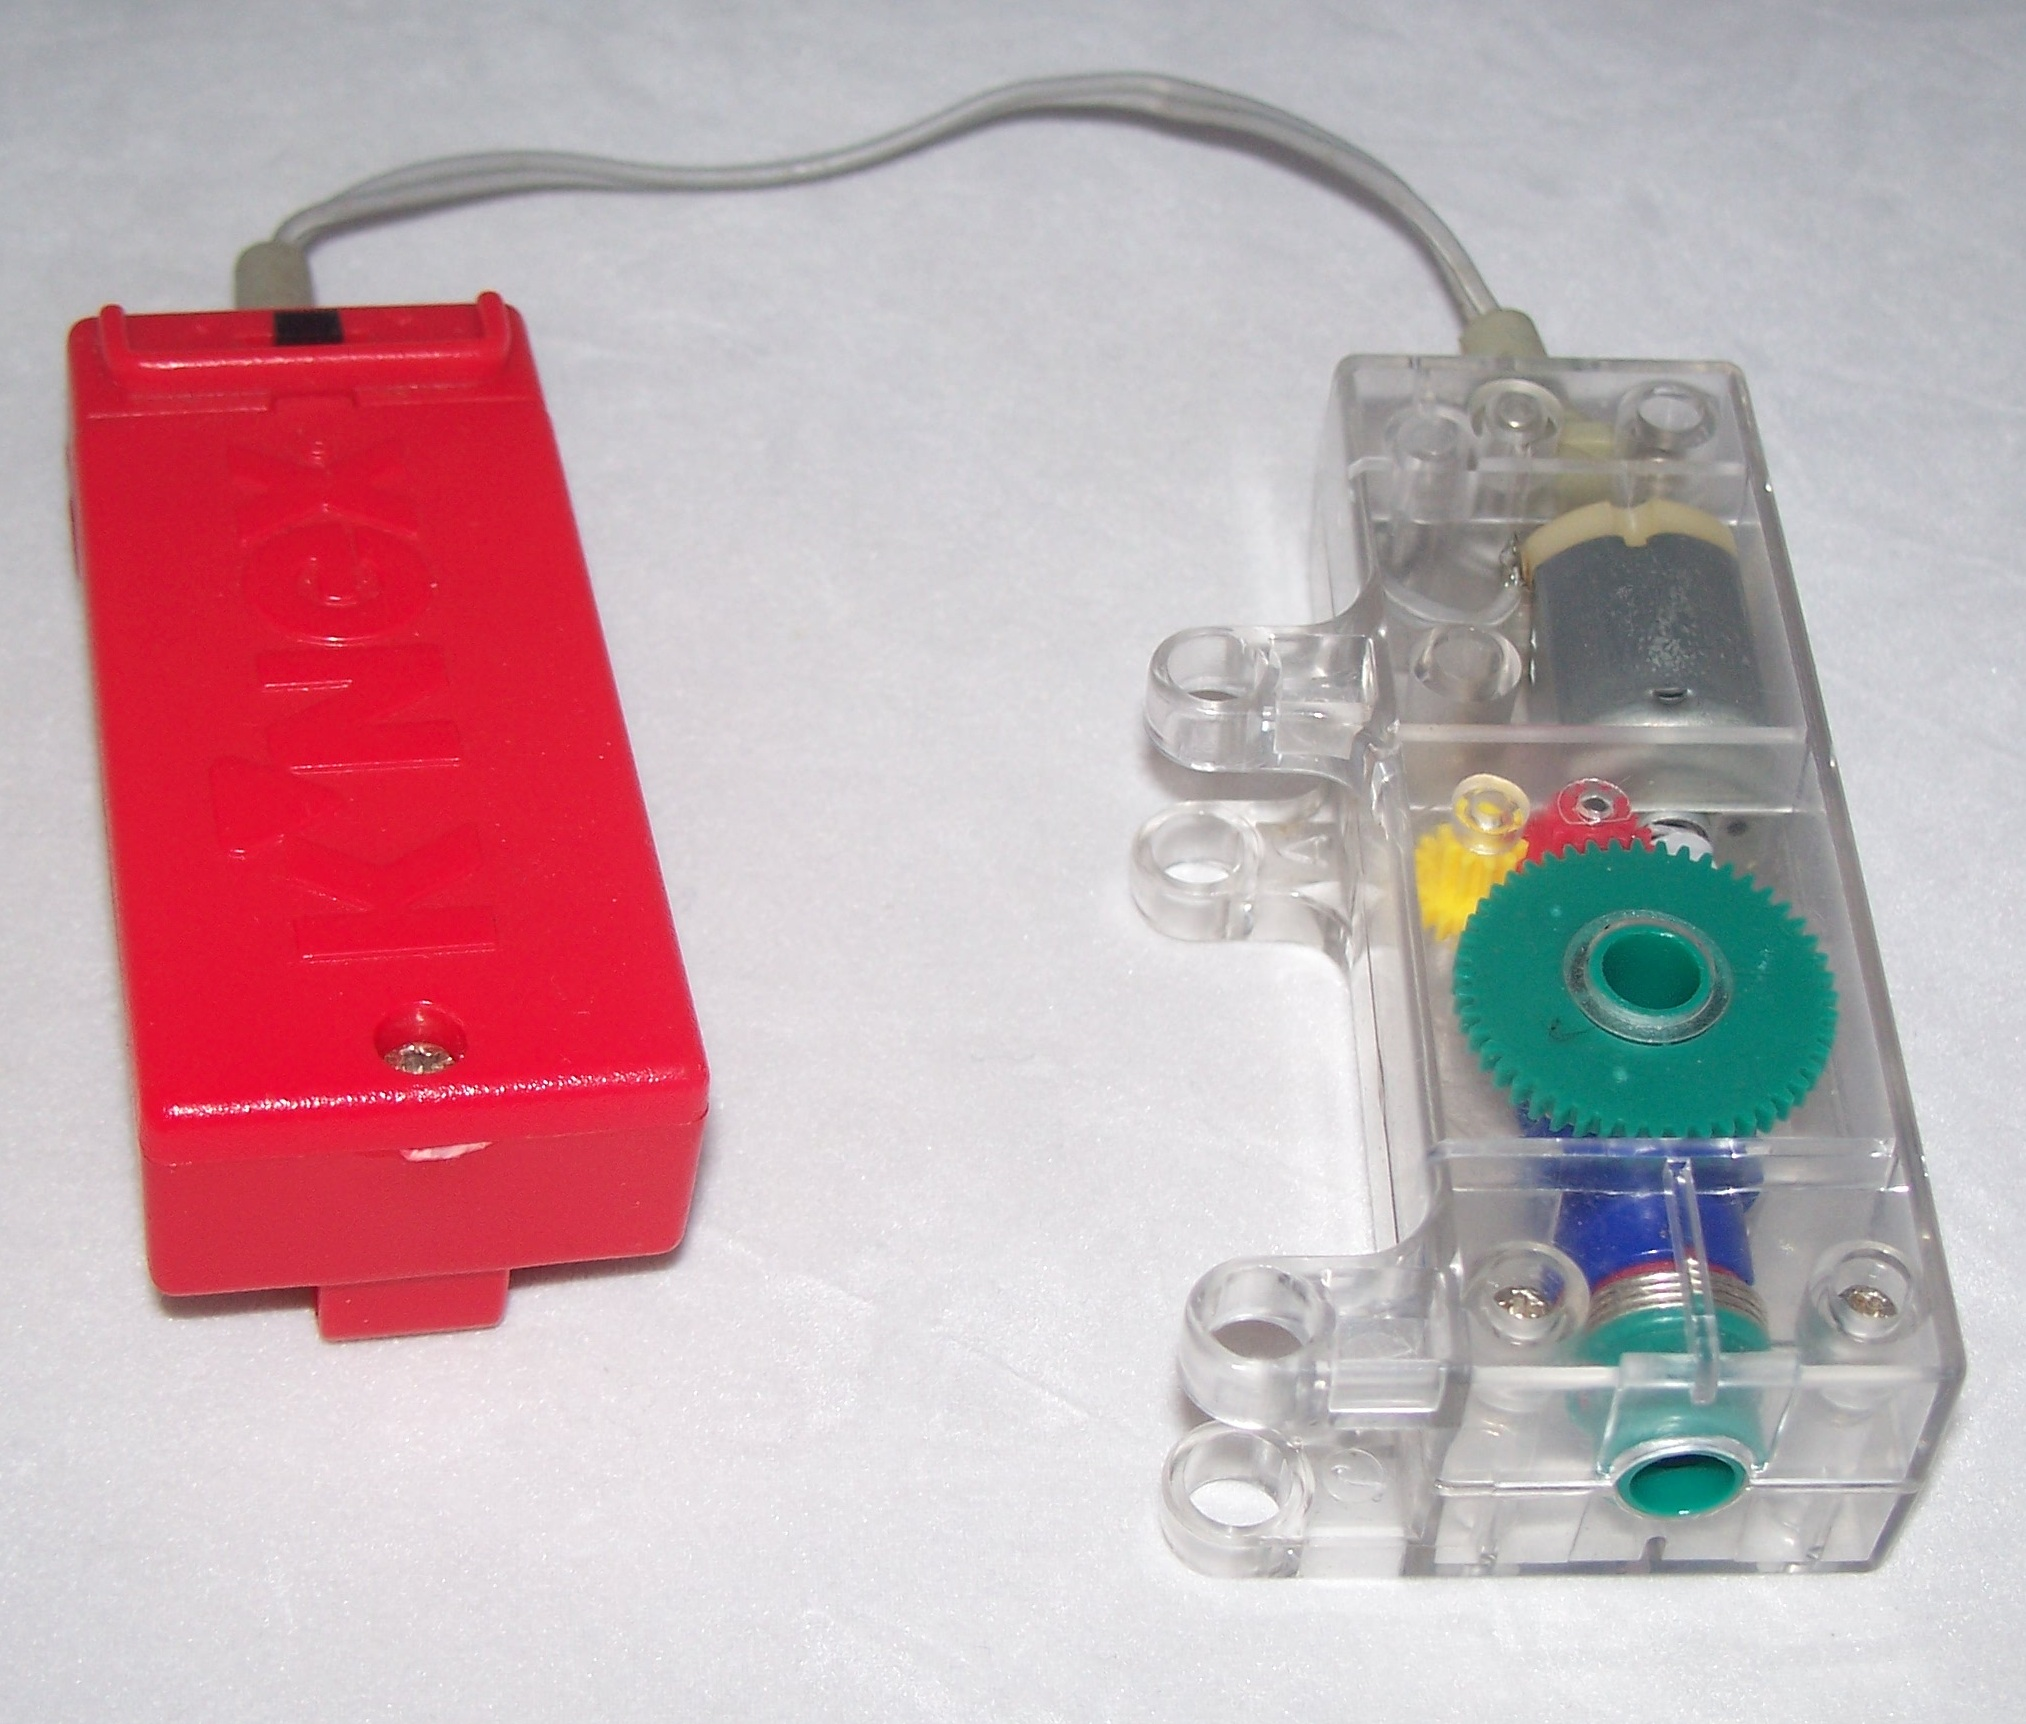 K'NEX Battery Motor Clear/Green and red